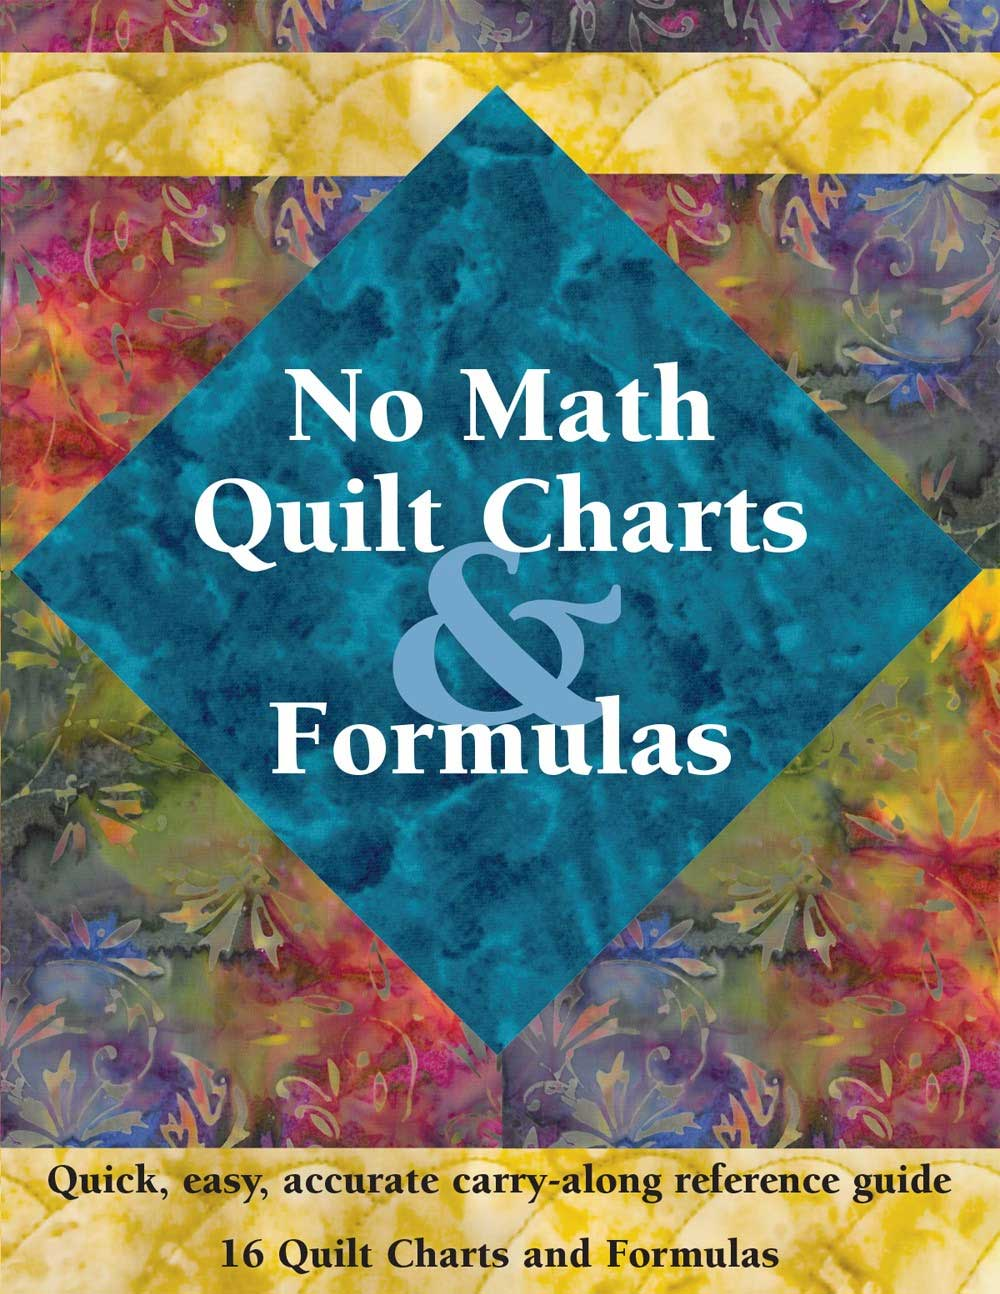 No Math Quilt Charts & Formulas - Quilting Book